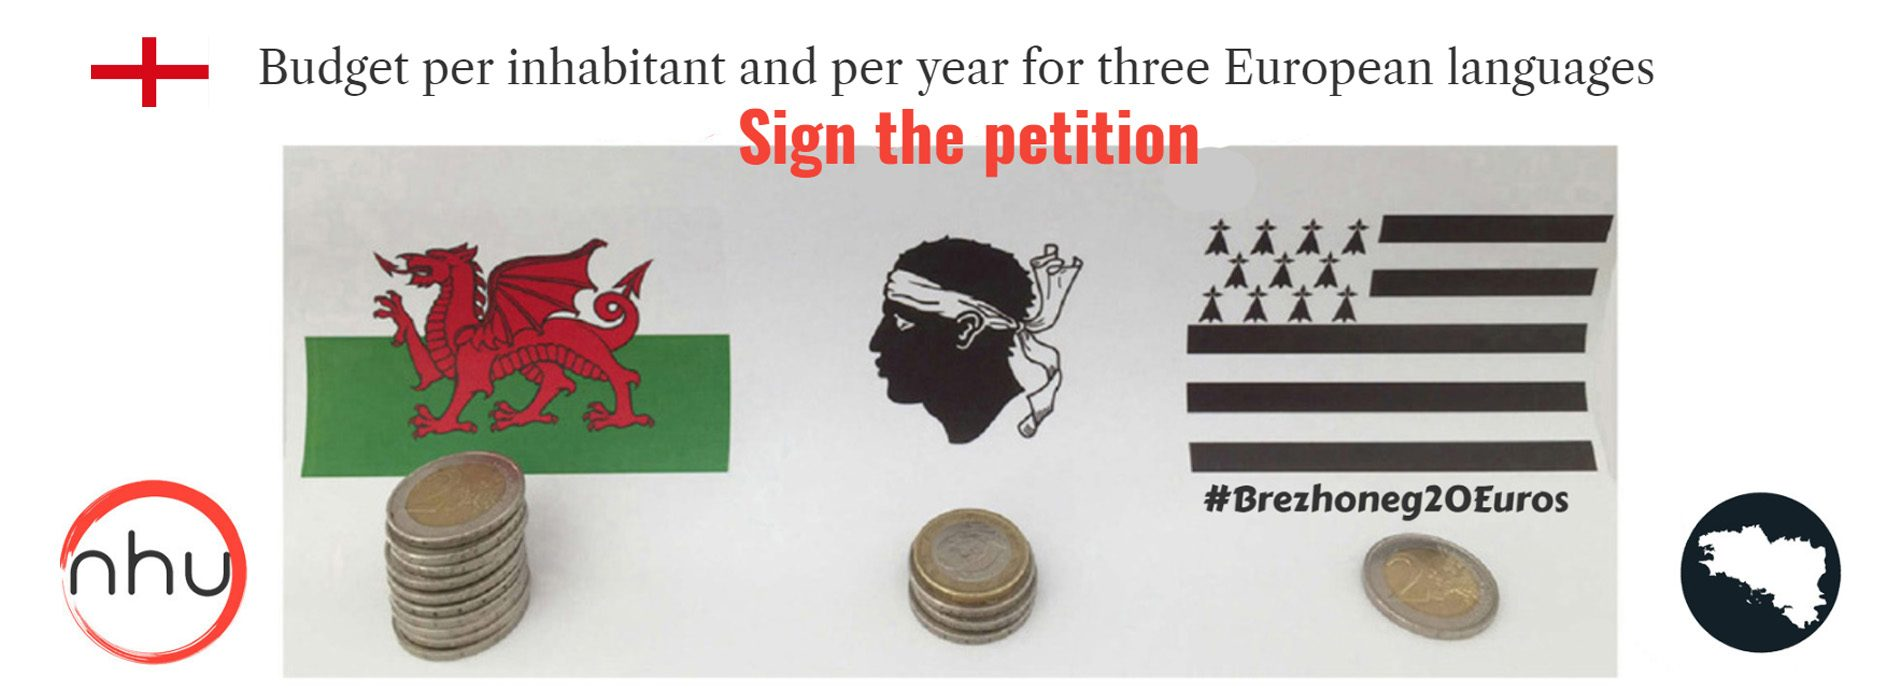 ✅ #Brezhoneg20Euros : Please, sign this petition